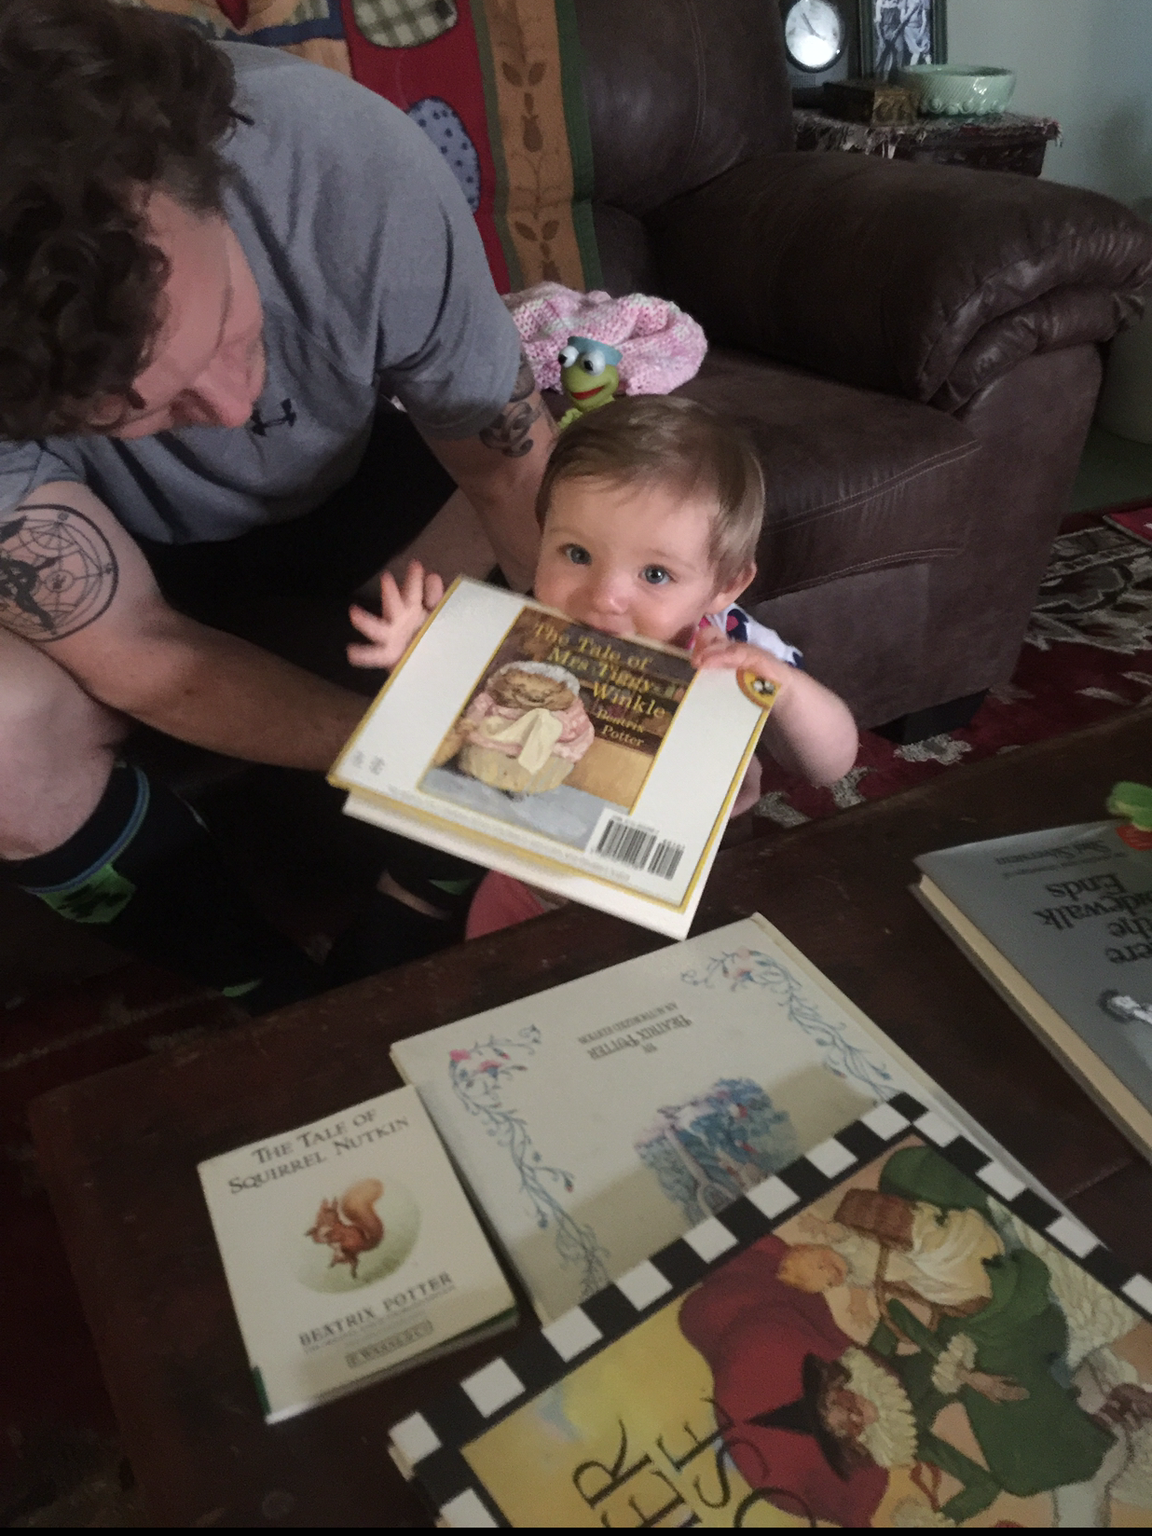 Jacob Faulkner babysits his niece. He enjoyed reading